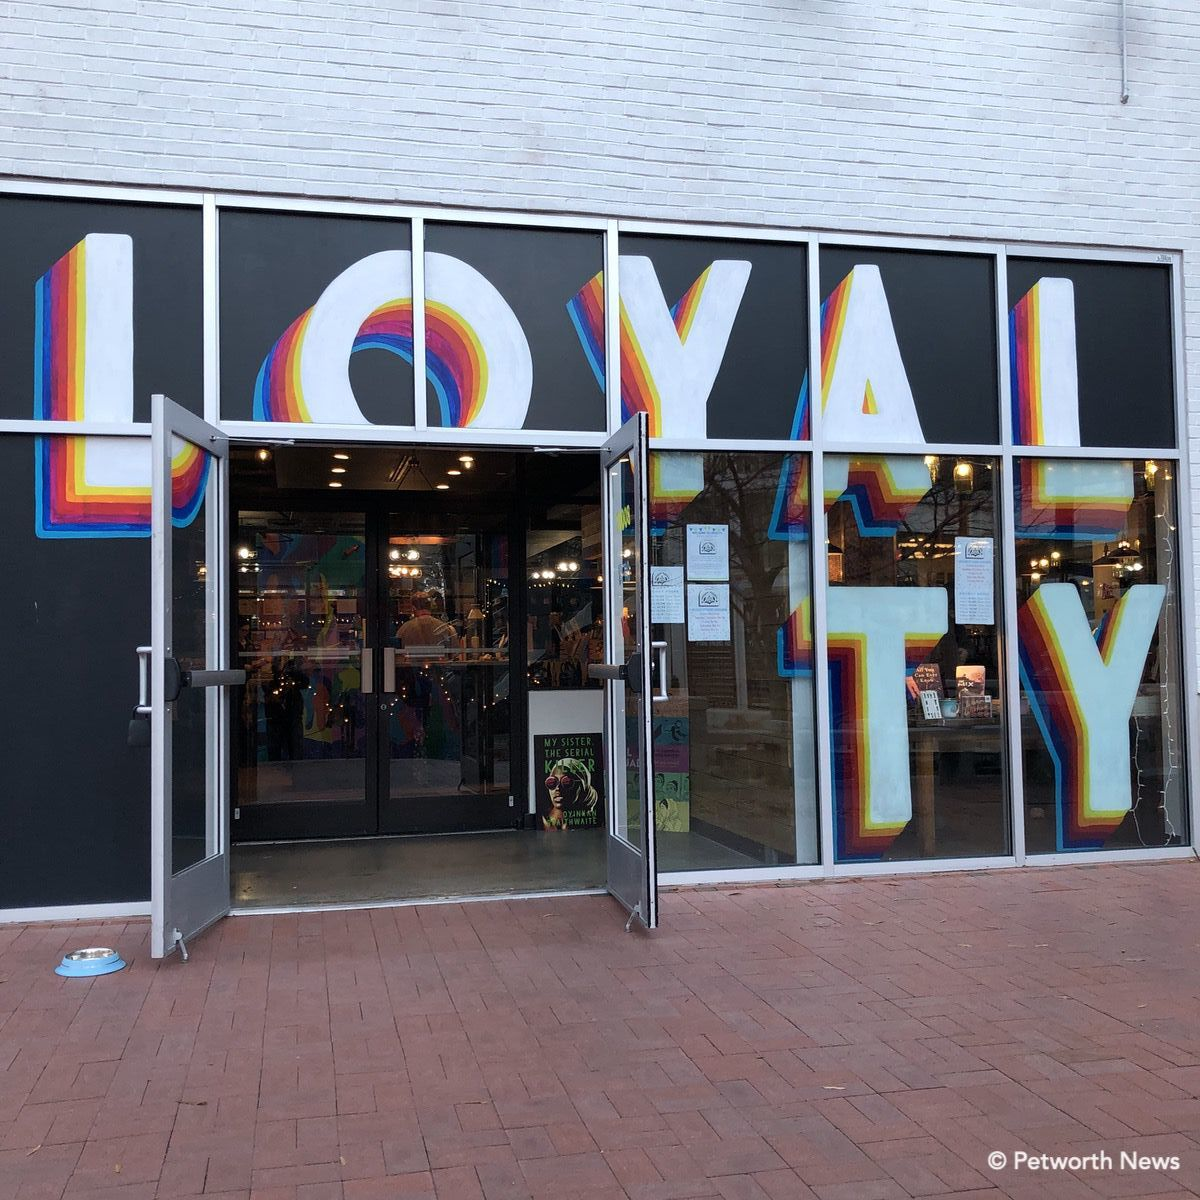 The Loyalty Bookstore pop-up in Silver Spring.